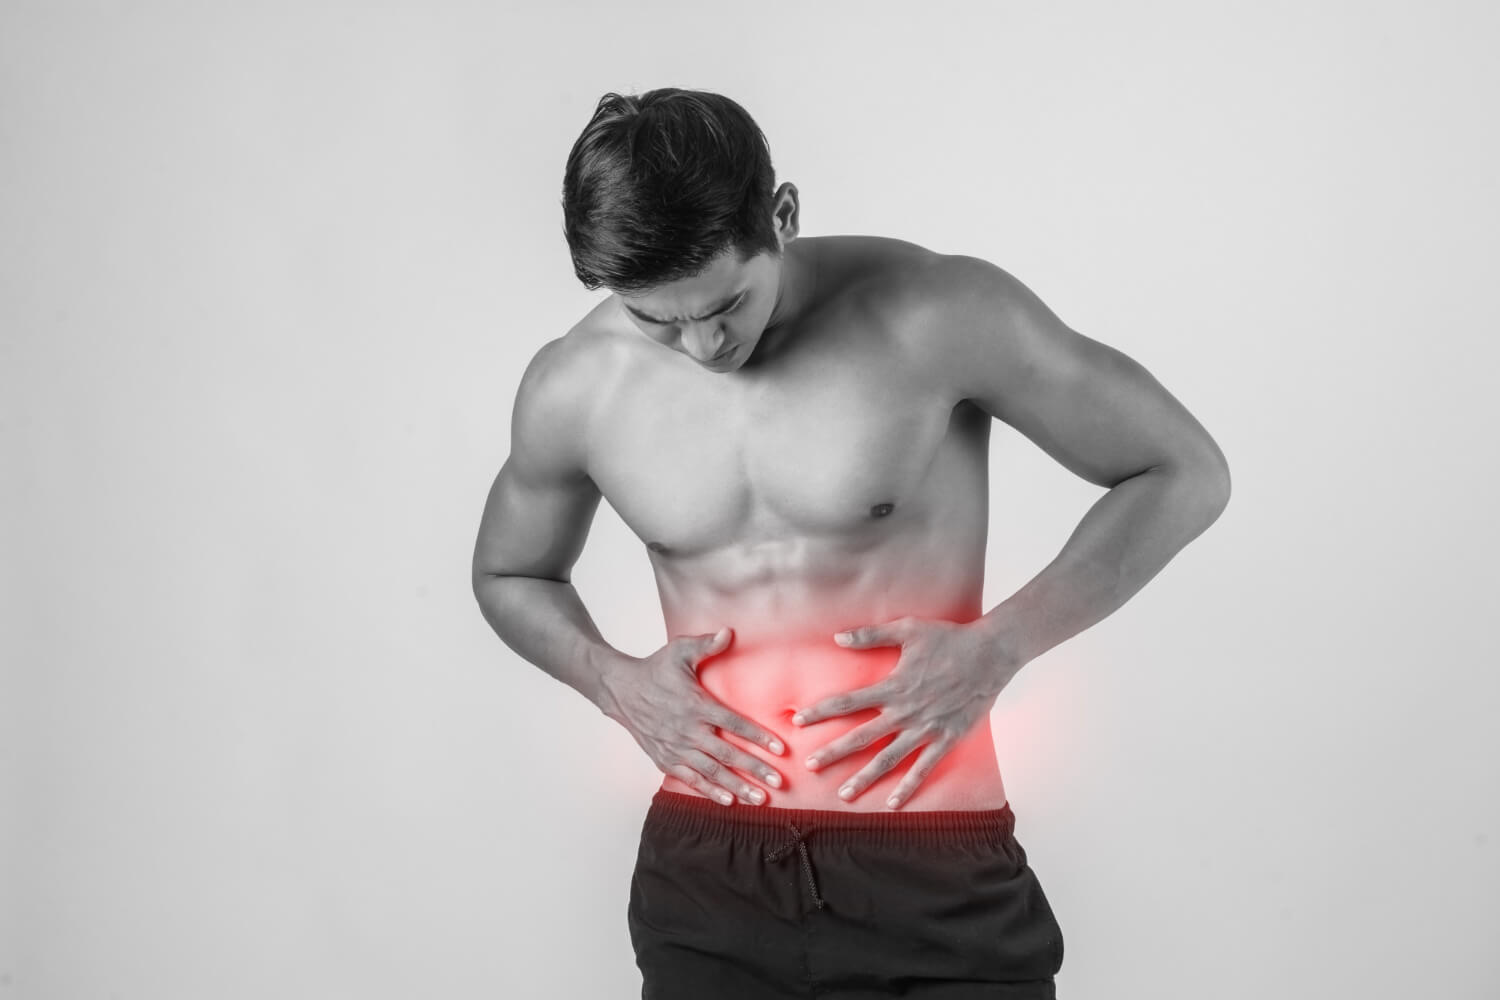 young-handsome-muscular-man-has-abdominal-pain-isolated-white-background